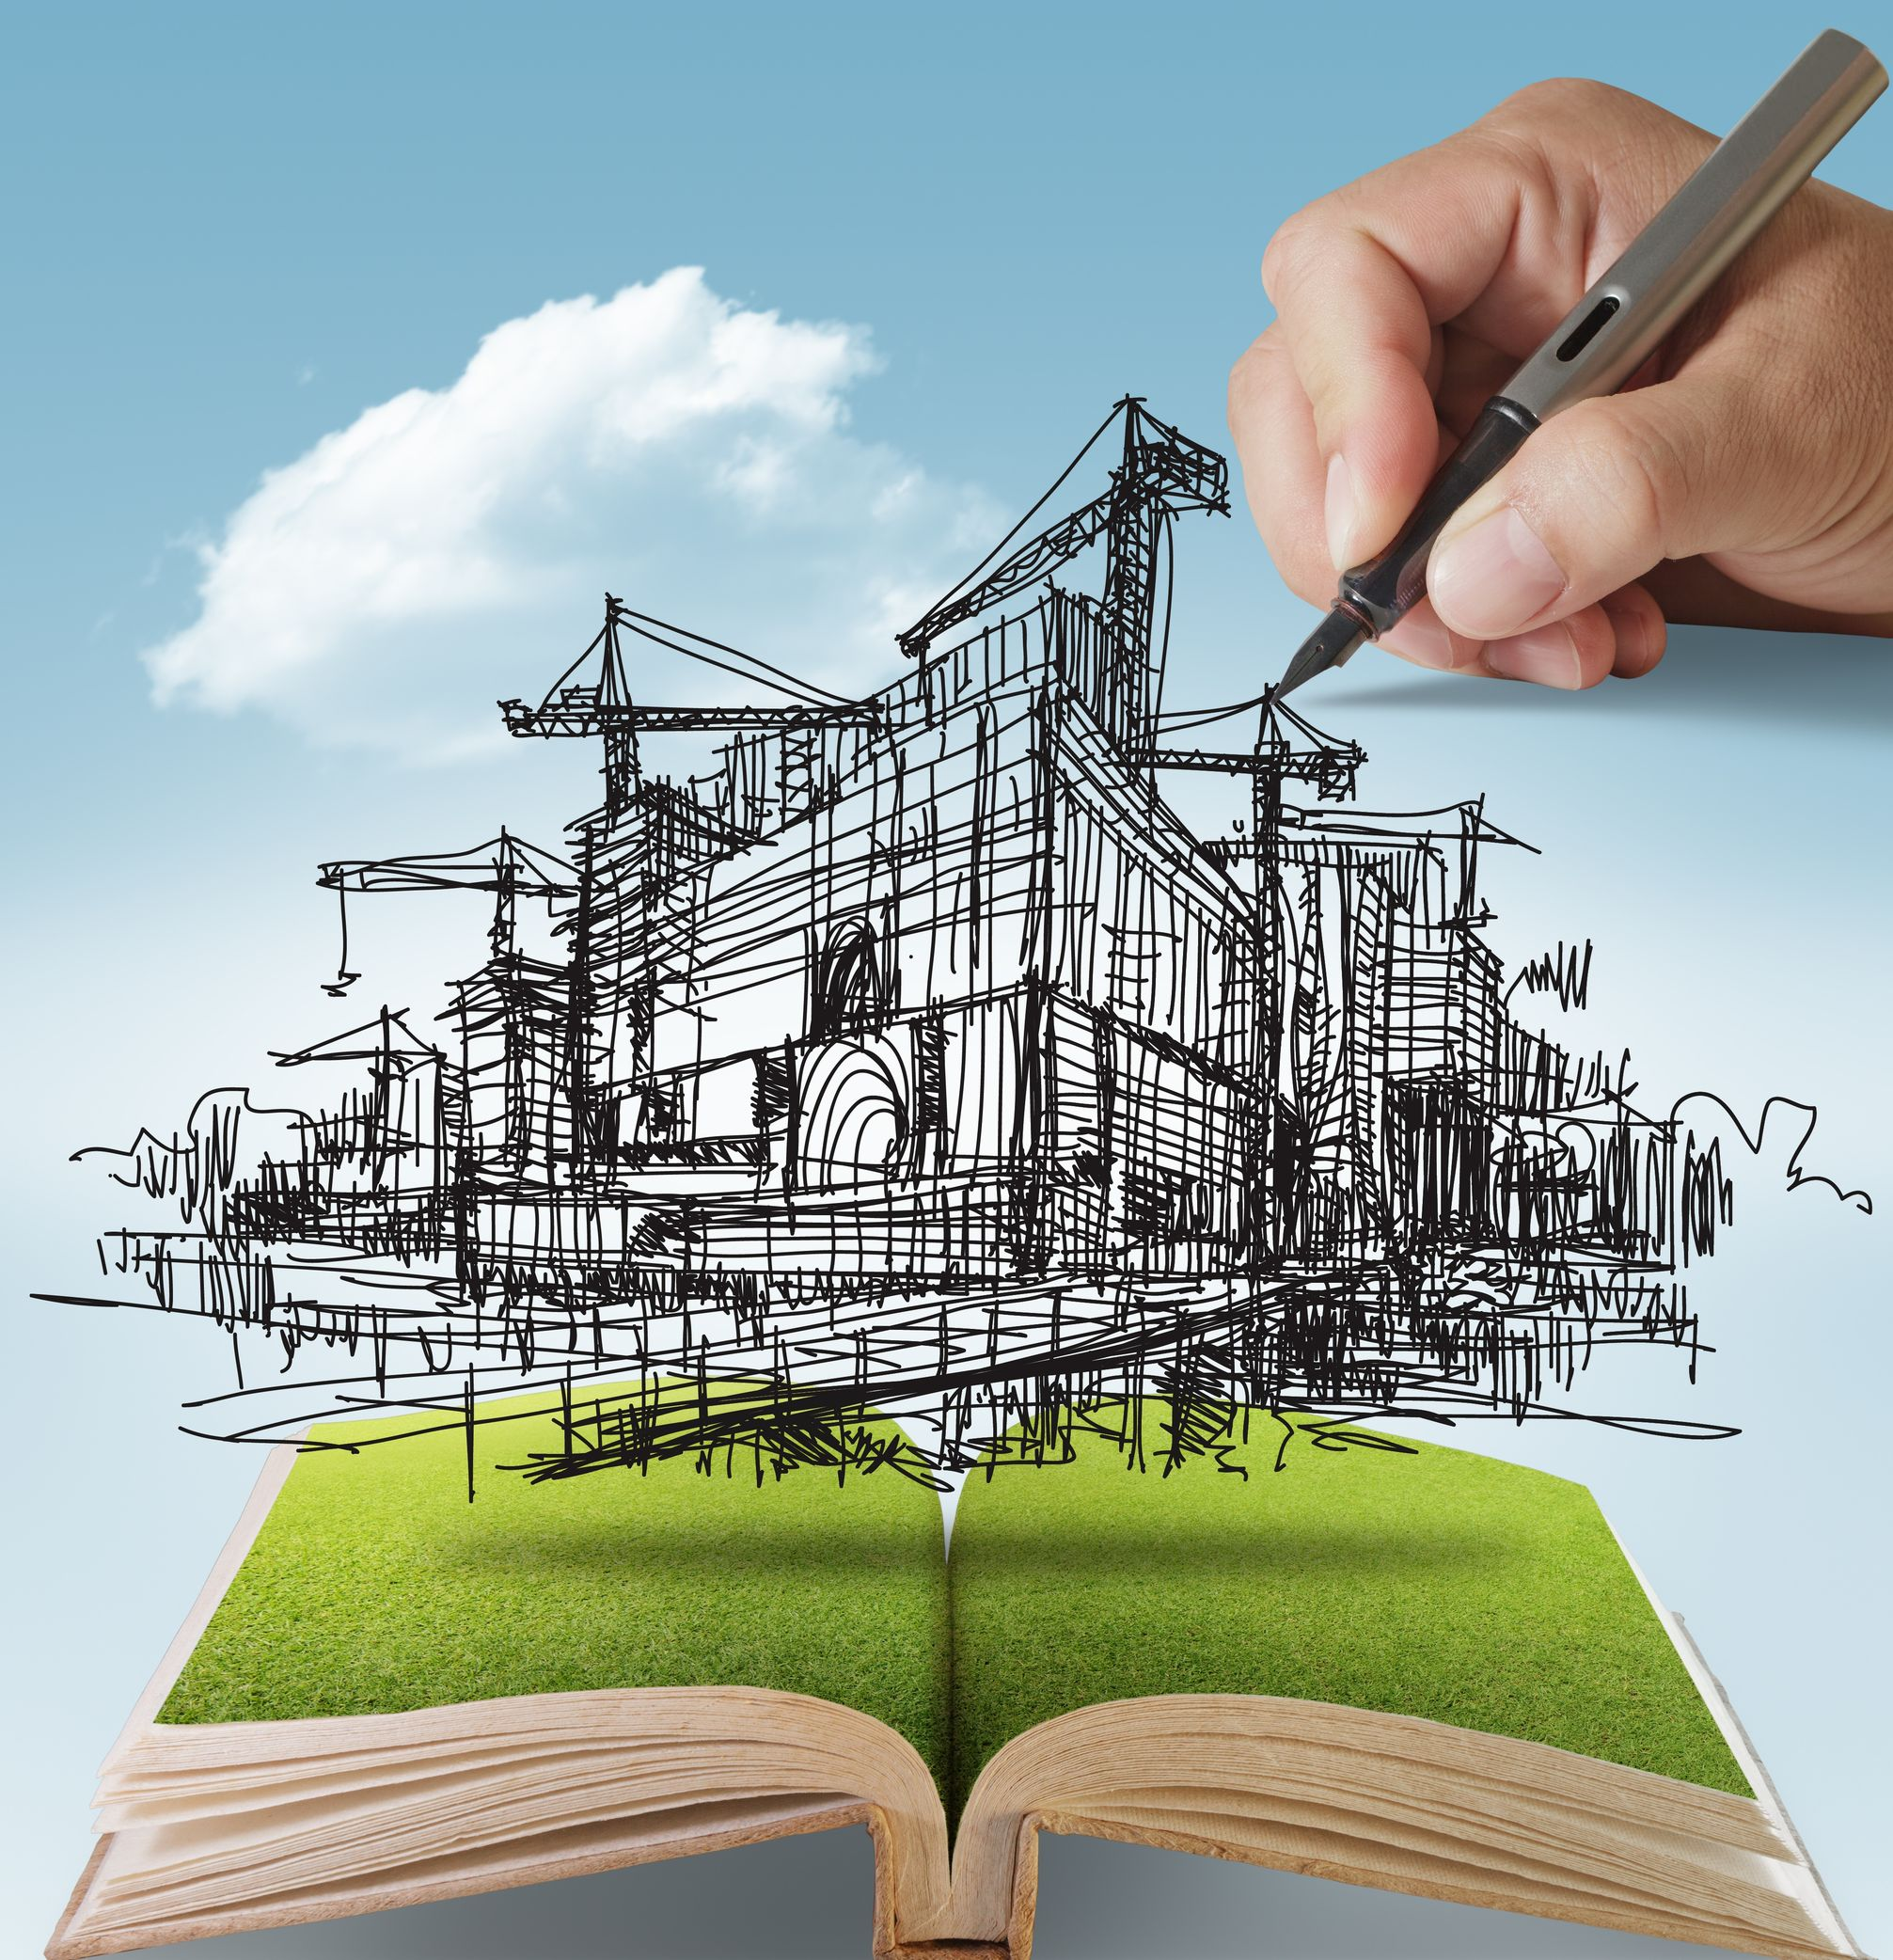 building construction The new master of real estate development this program unites expertise in construction, city planning, architecture, finance, law, enterprise and engineering into one forward-looking graduate degree.